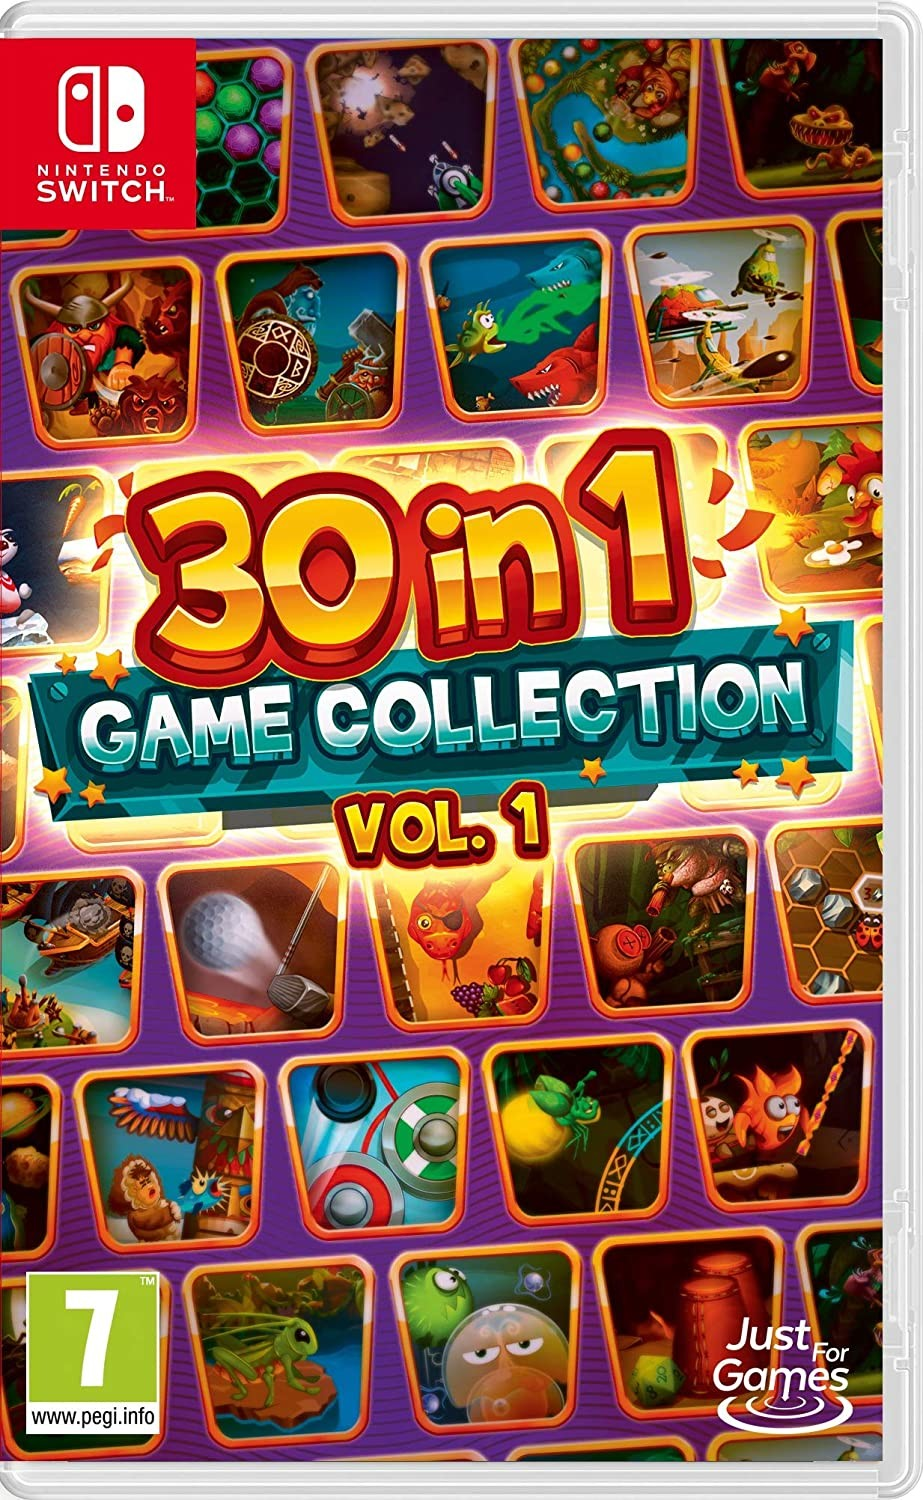 30 In 1 Game Collection Vol 1 (GRA NINTENDO SWITCH)